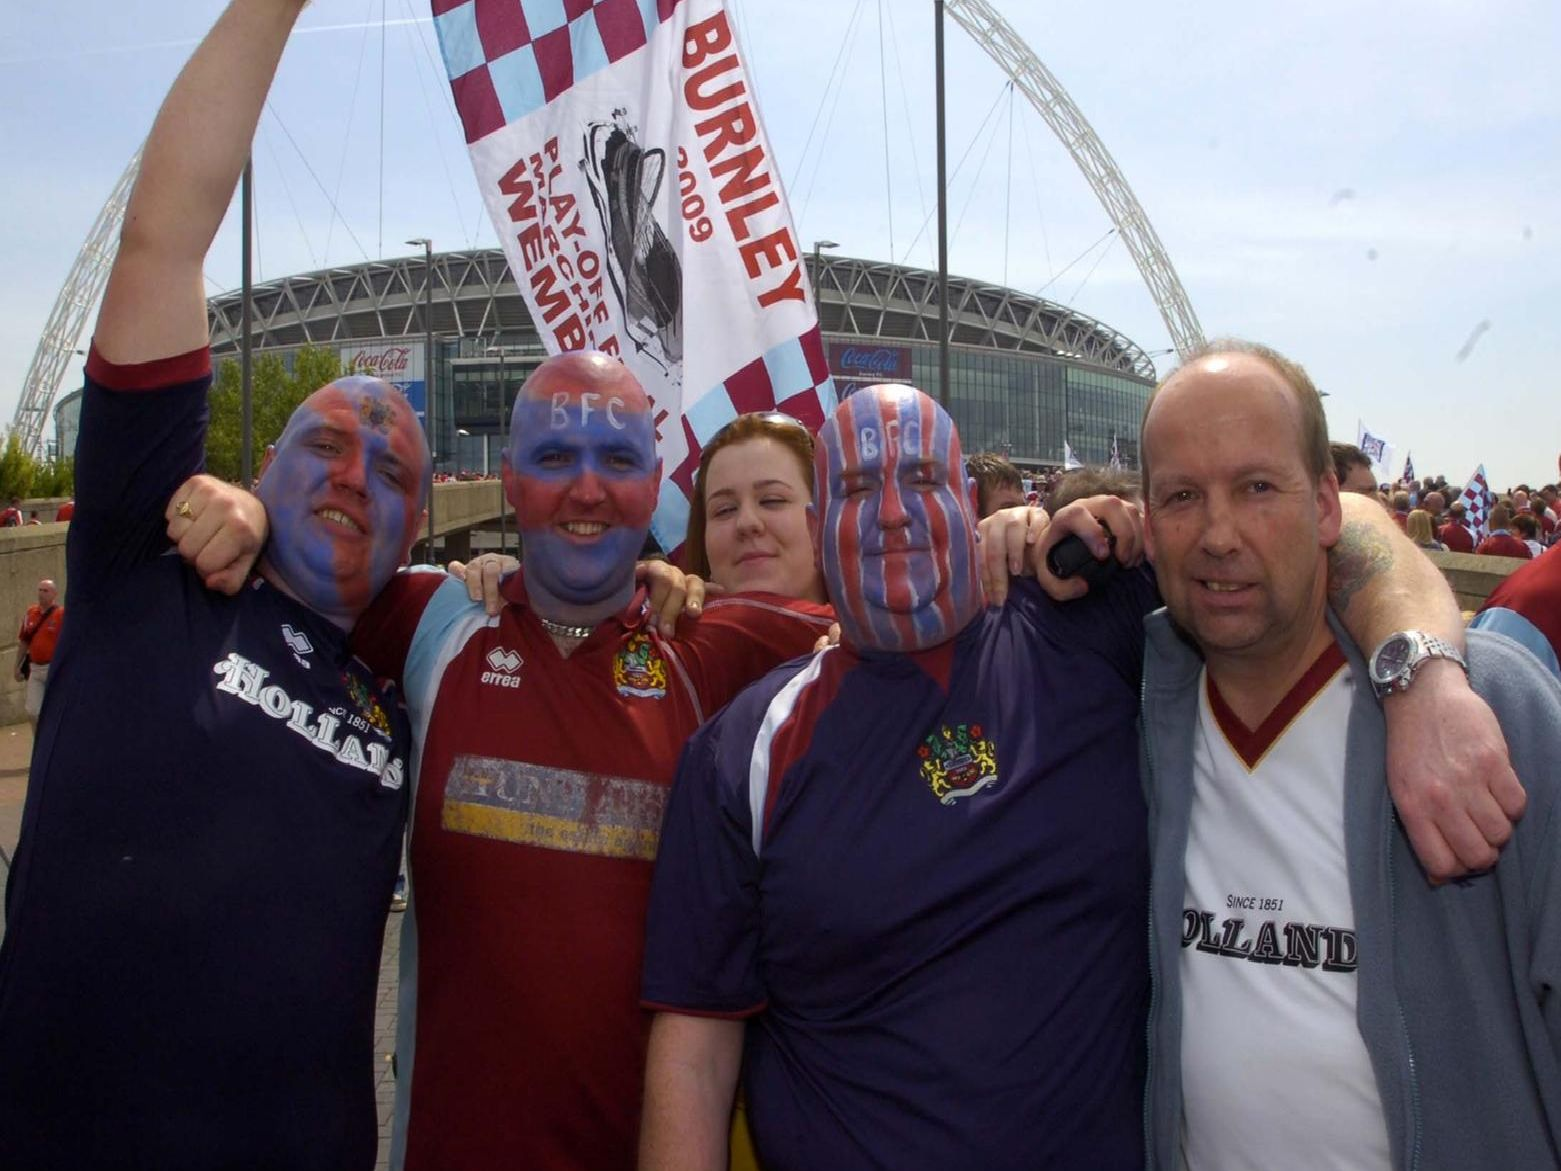 Burnley fans celebrate their side's promotion to the Premier League